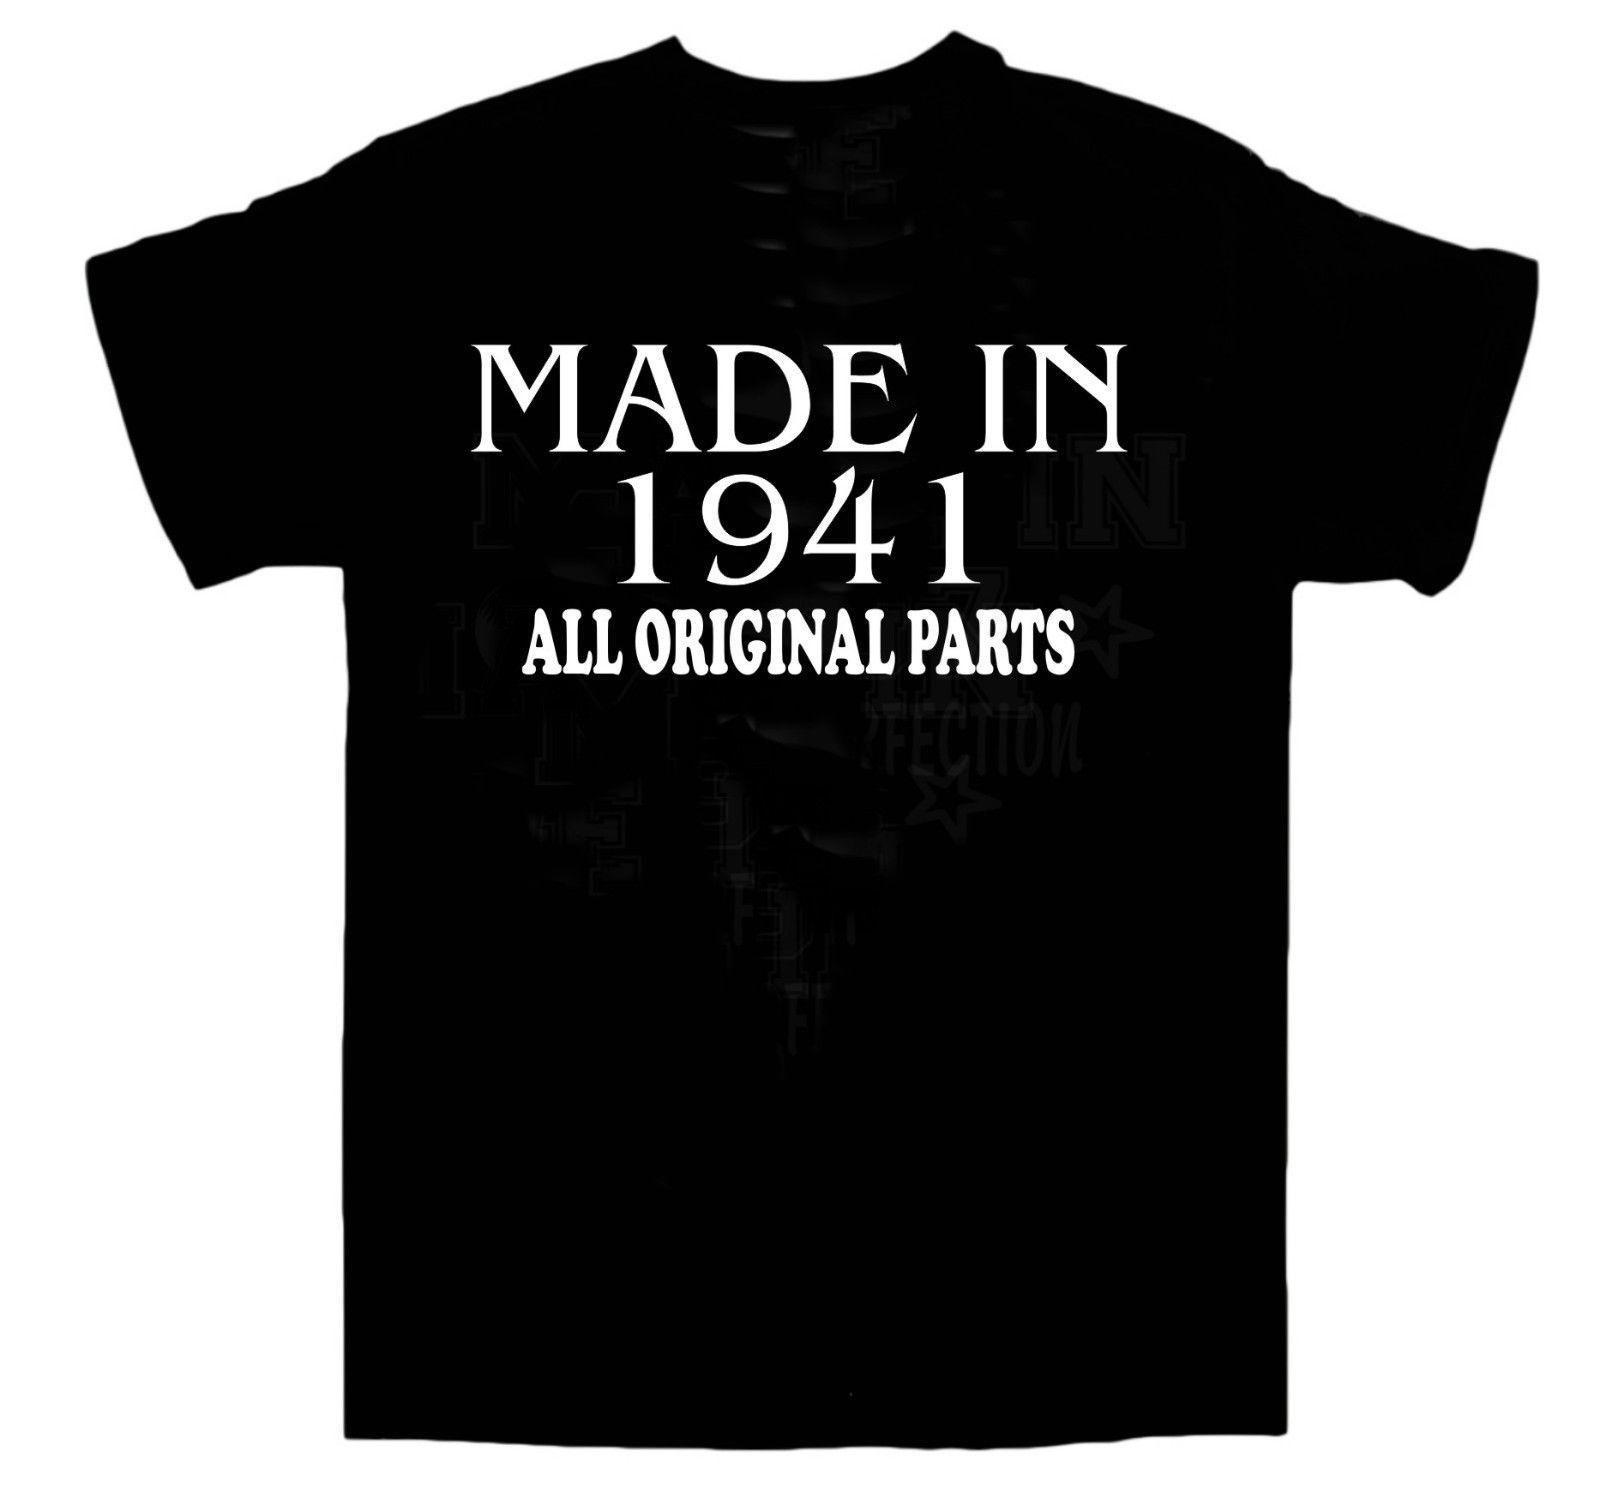 Made In 1941 BIRTHDAY T SHIRT All Original Parts Birthday Gift Idea Choose SizeALICE IN CHAINS TRI CELL BLACK Men Women Unisex Shirt Shopping